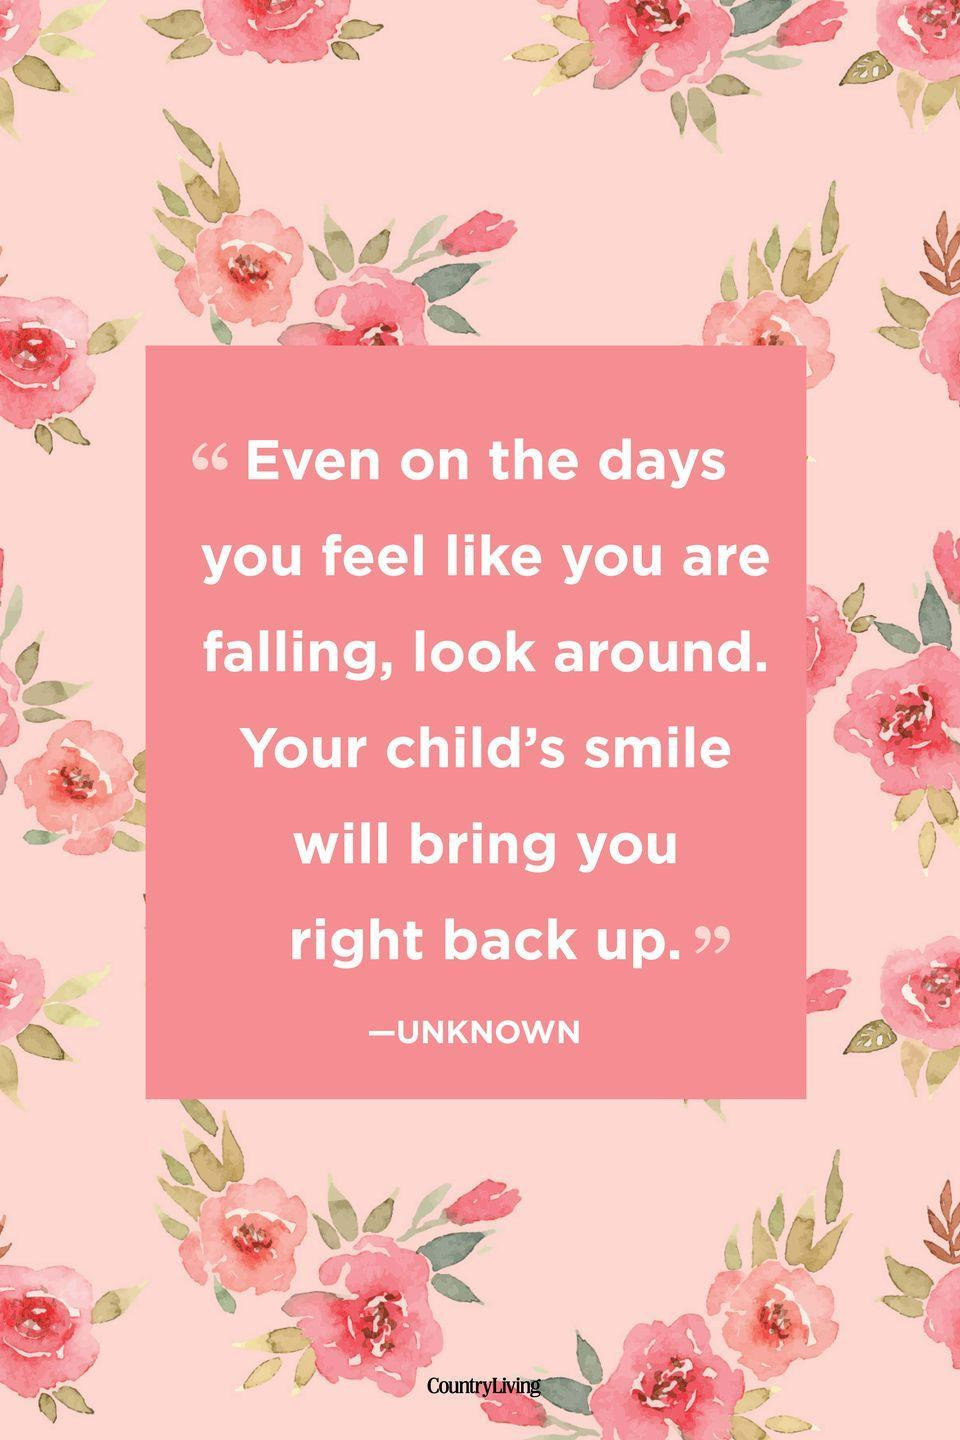 "<p>""Even on the days you feel like you are falling, look around. Your child's smile will bring you right back up.""</p>"